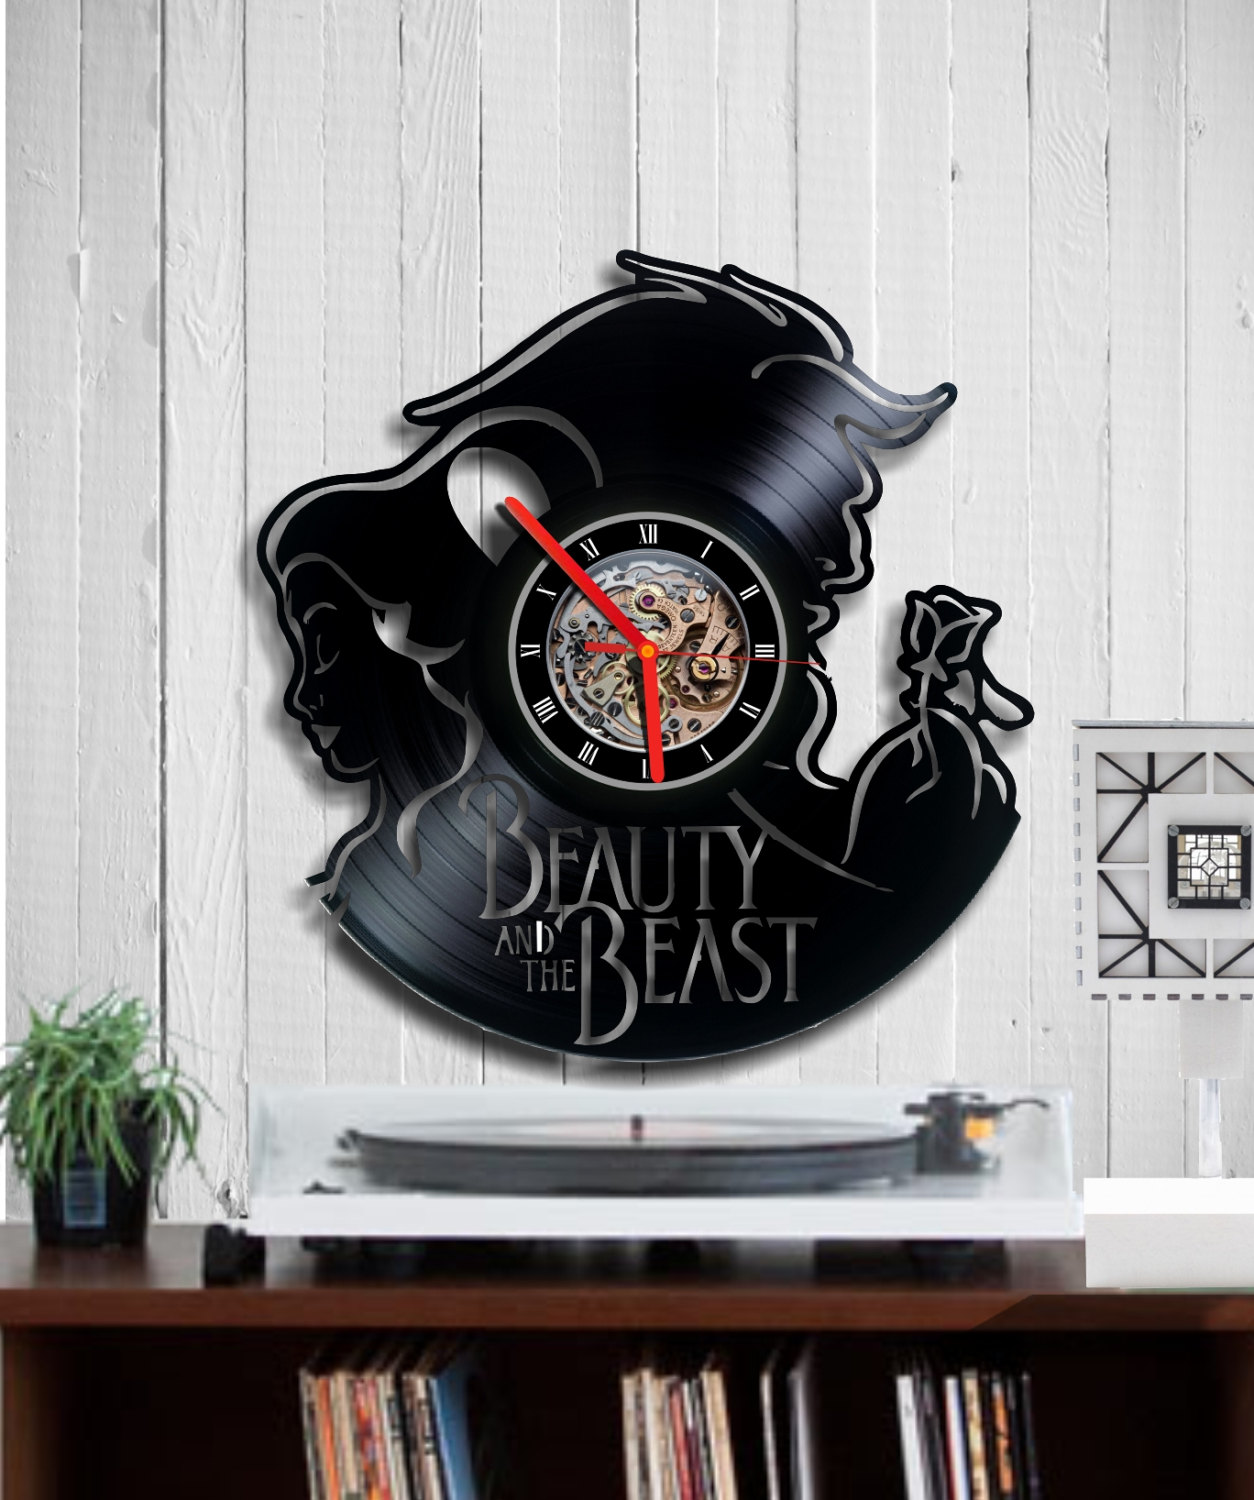 The Beauty And The Beast Clock Gift Record Wall Clock Indigovento